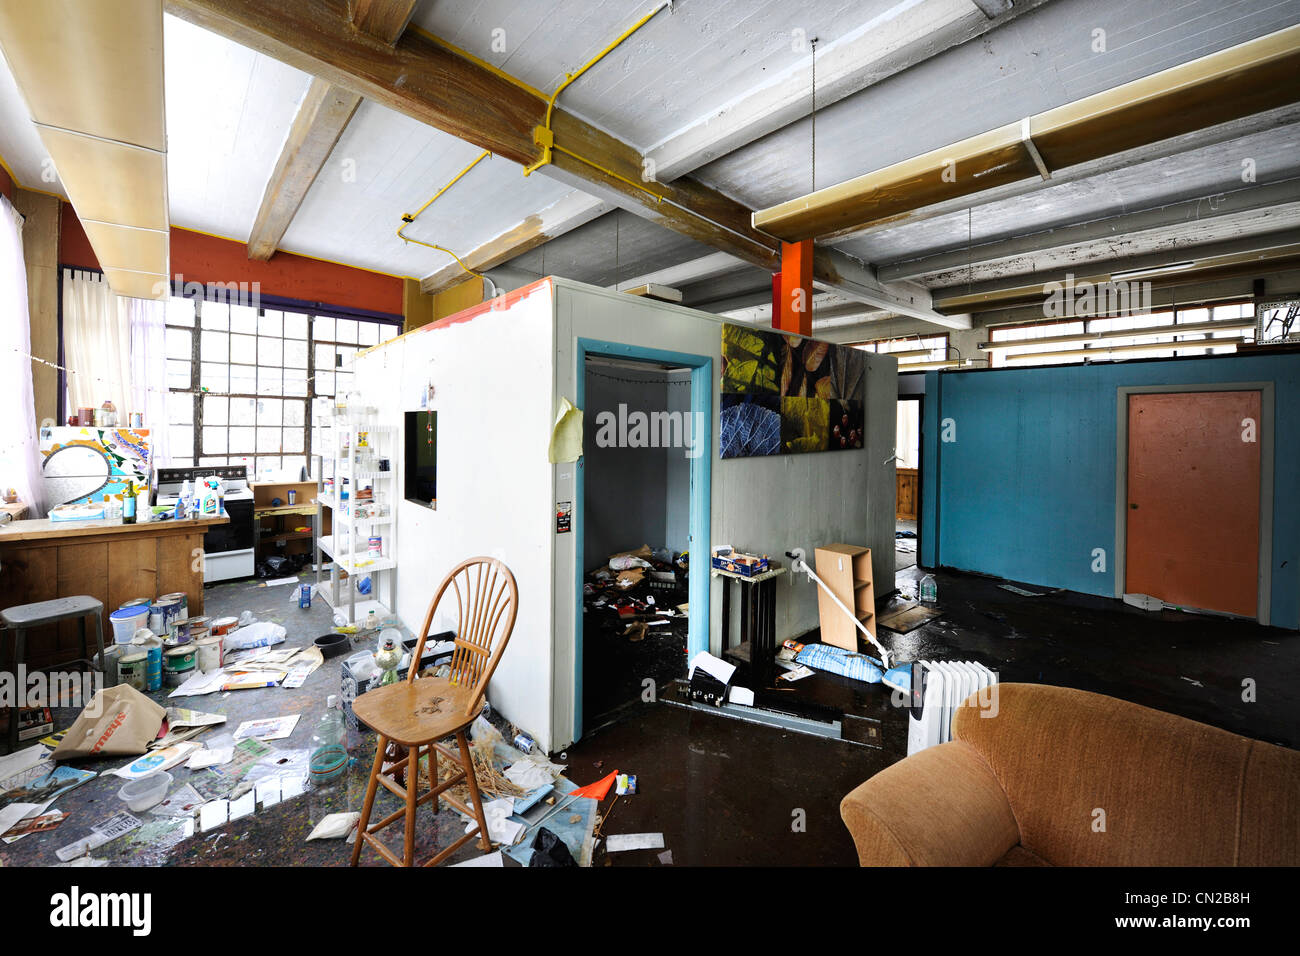 Industrial building sold in bankruptcy auction.  Unused for years, it was looted, vandalized, and occupied by squatters. - Stock Image